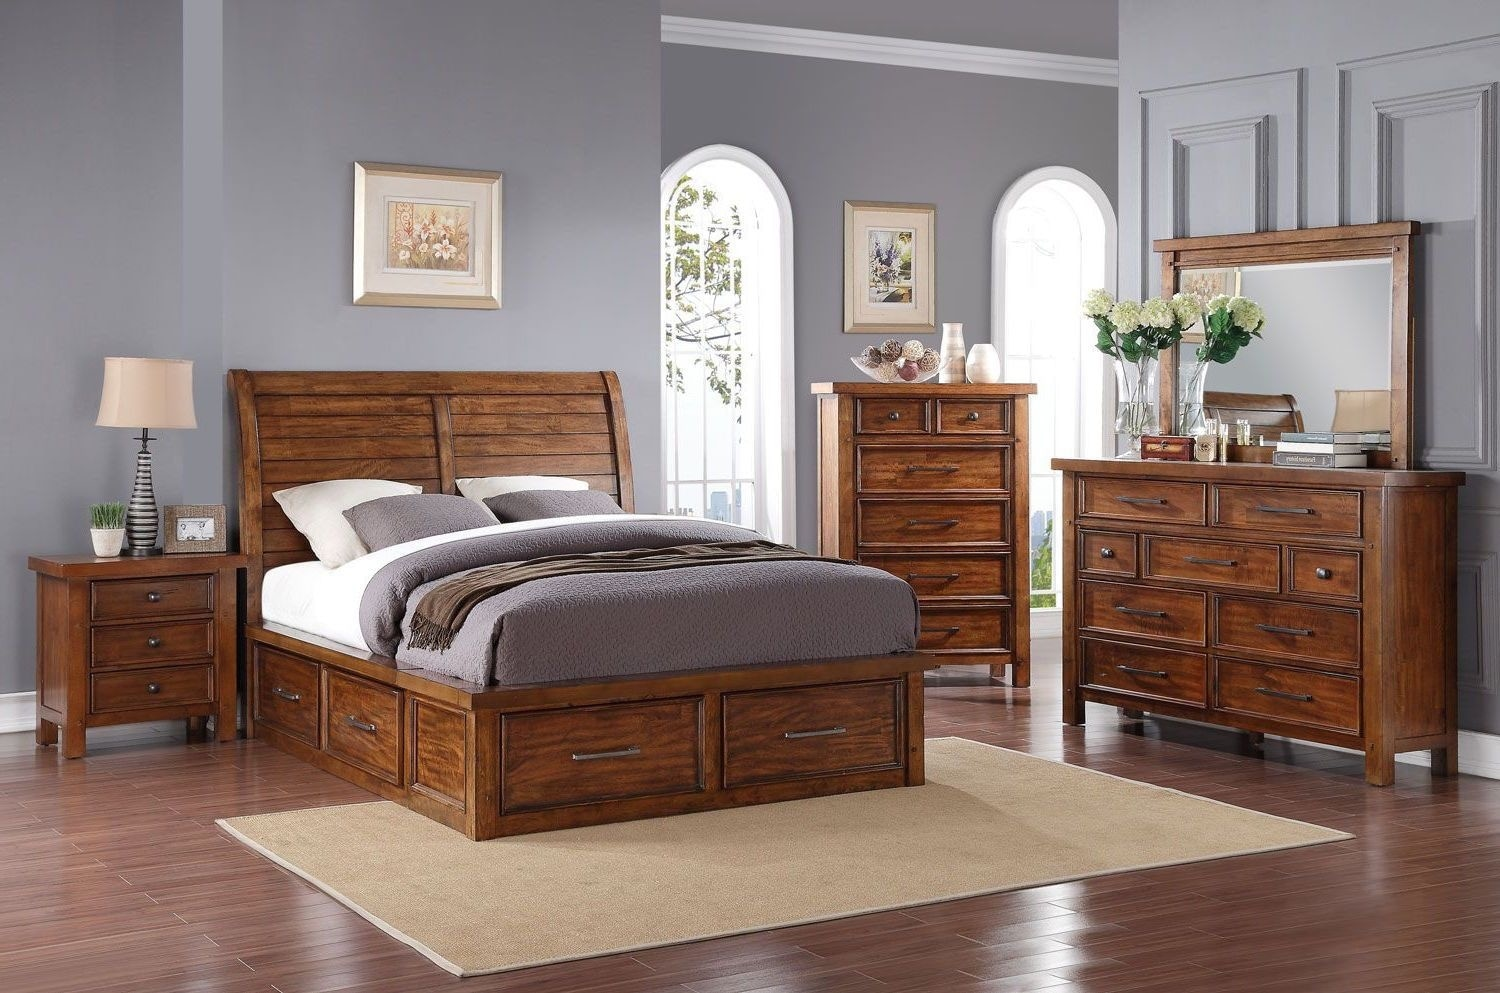 Sonoma 7-Piece Queen Storage Bedroom Package – Light Brown